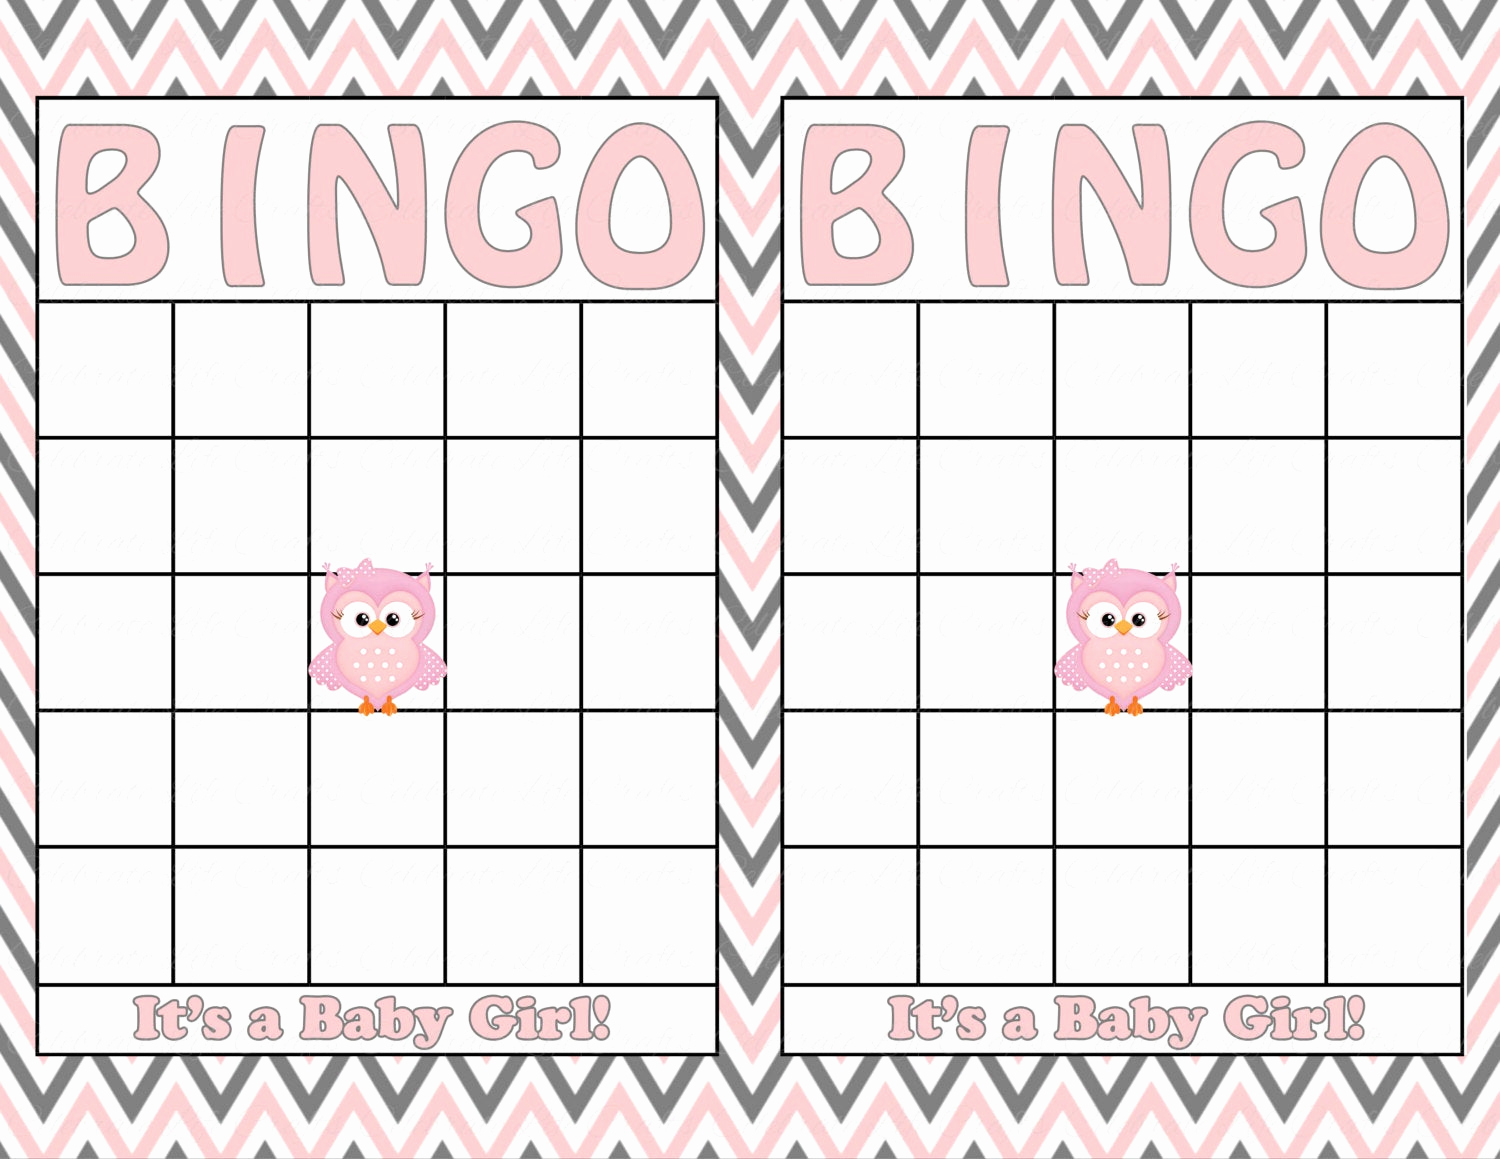 Free Printable Baby Shower Card Lovely Blank Baby Shower Bingo Cards Printable by Celebratelifecrafts